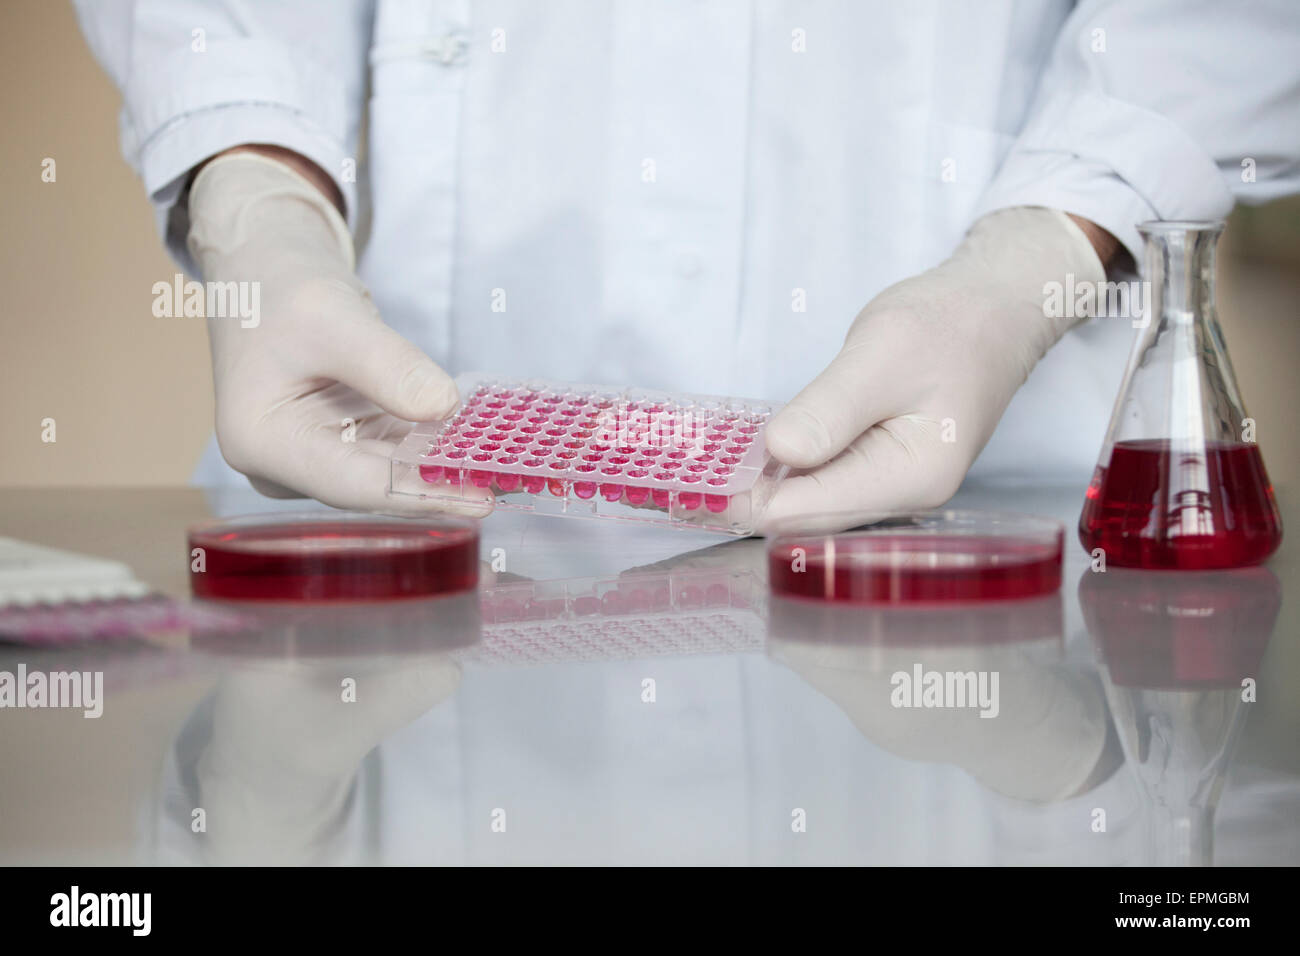 Scientist with liquid in test tubes - Stock Image